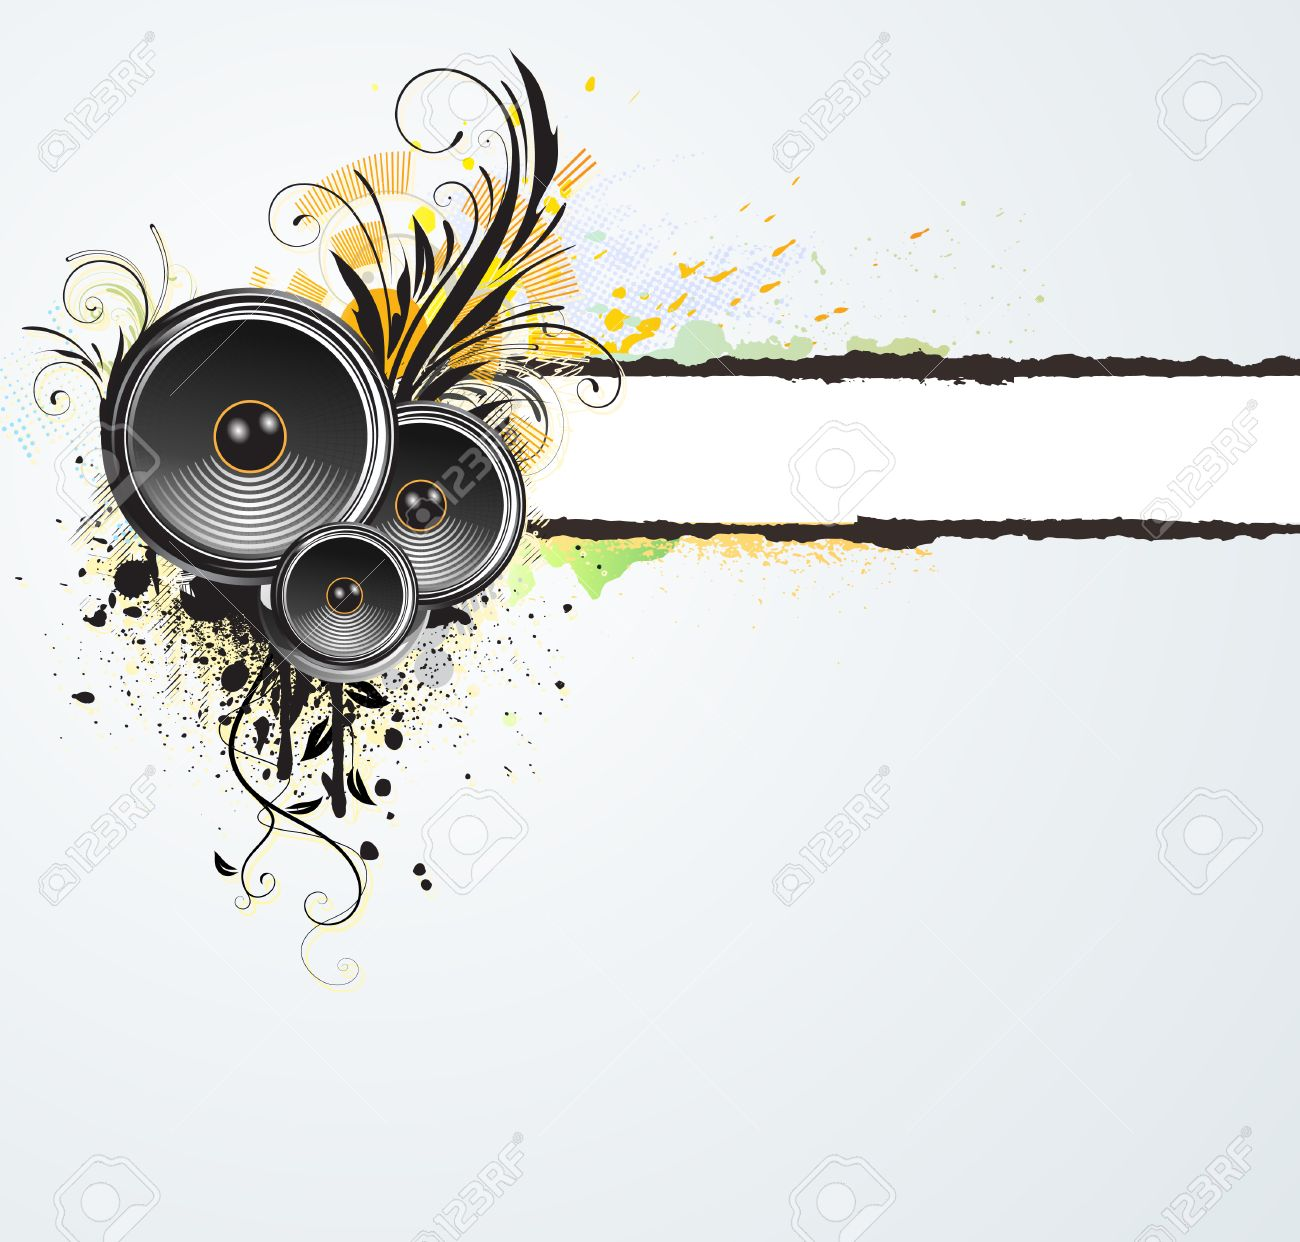 vector illustration of grunge floral abstract banner with music